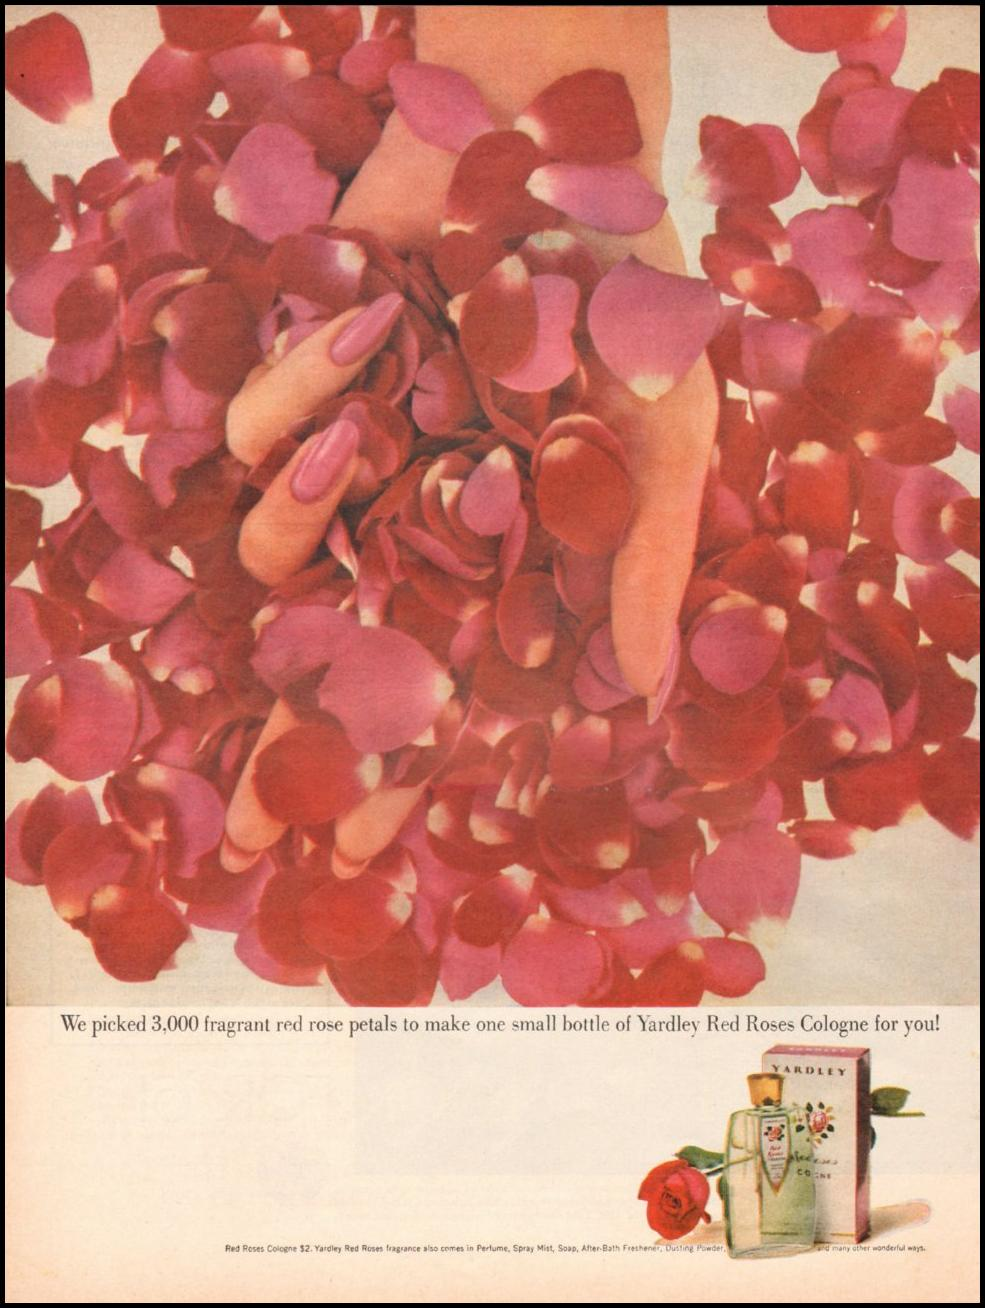 YARDLEY RED ROSES COLOGNE LIFE 05/05/1961